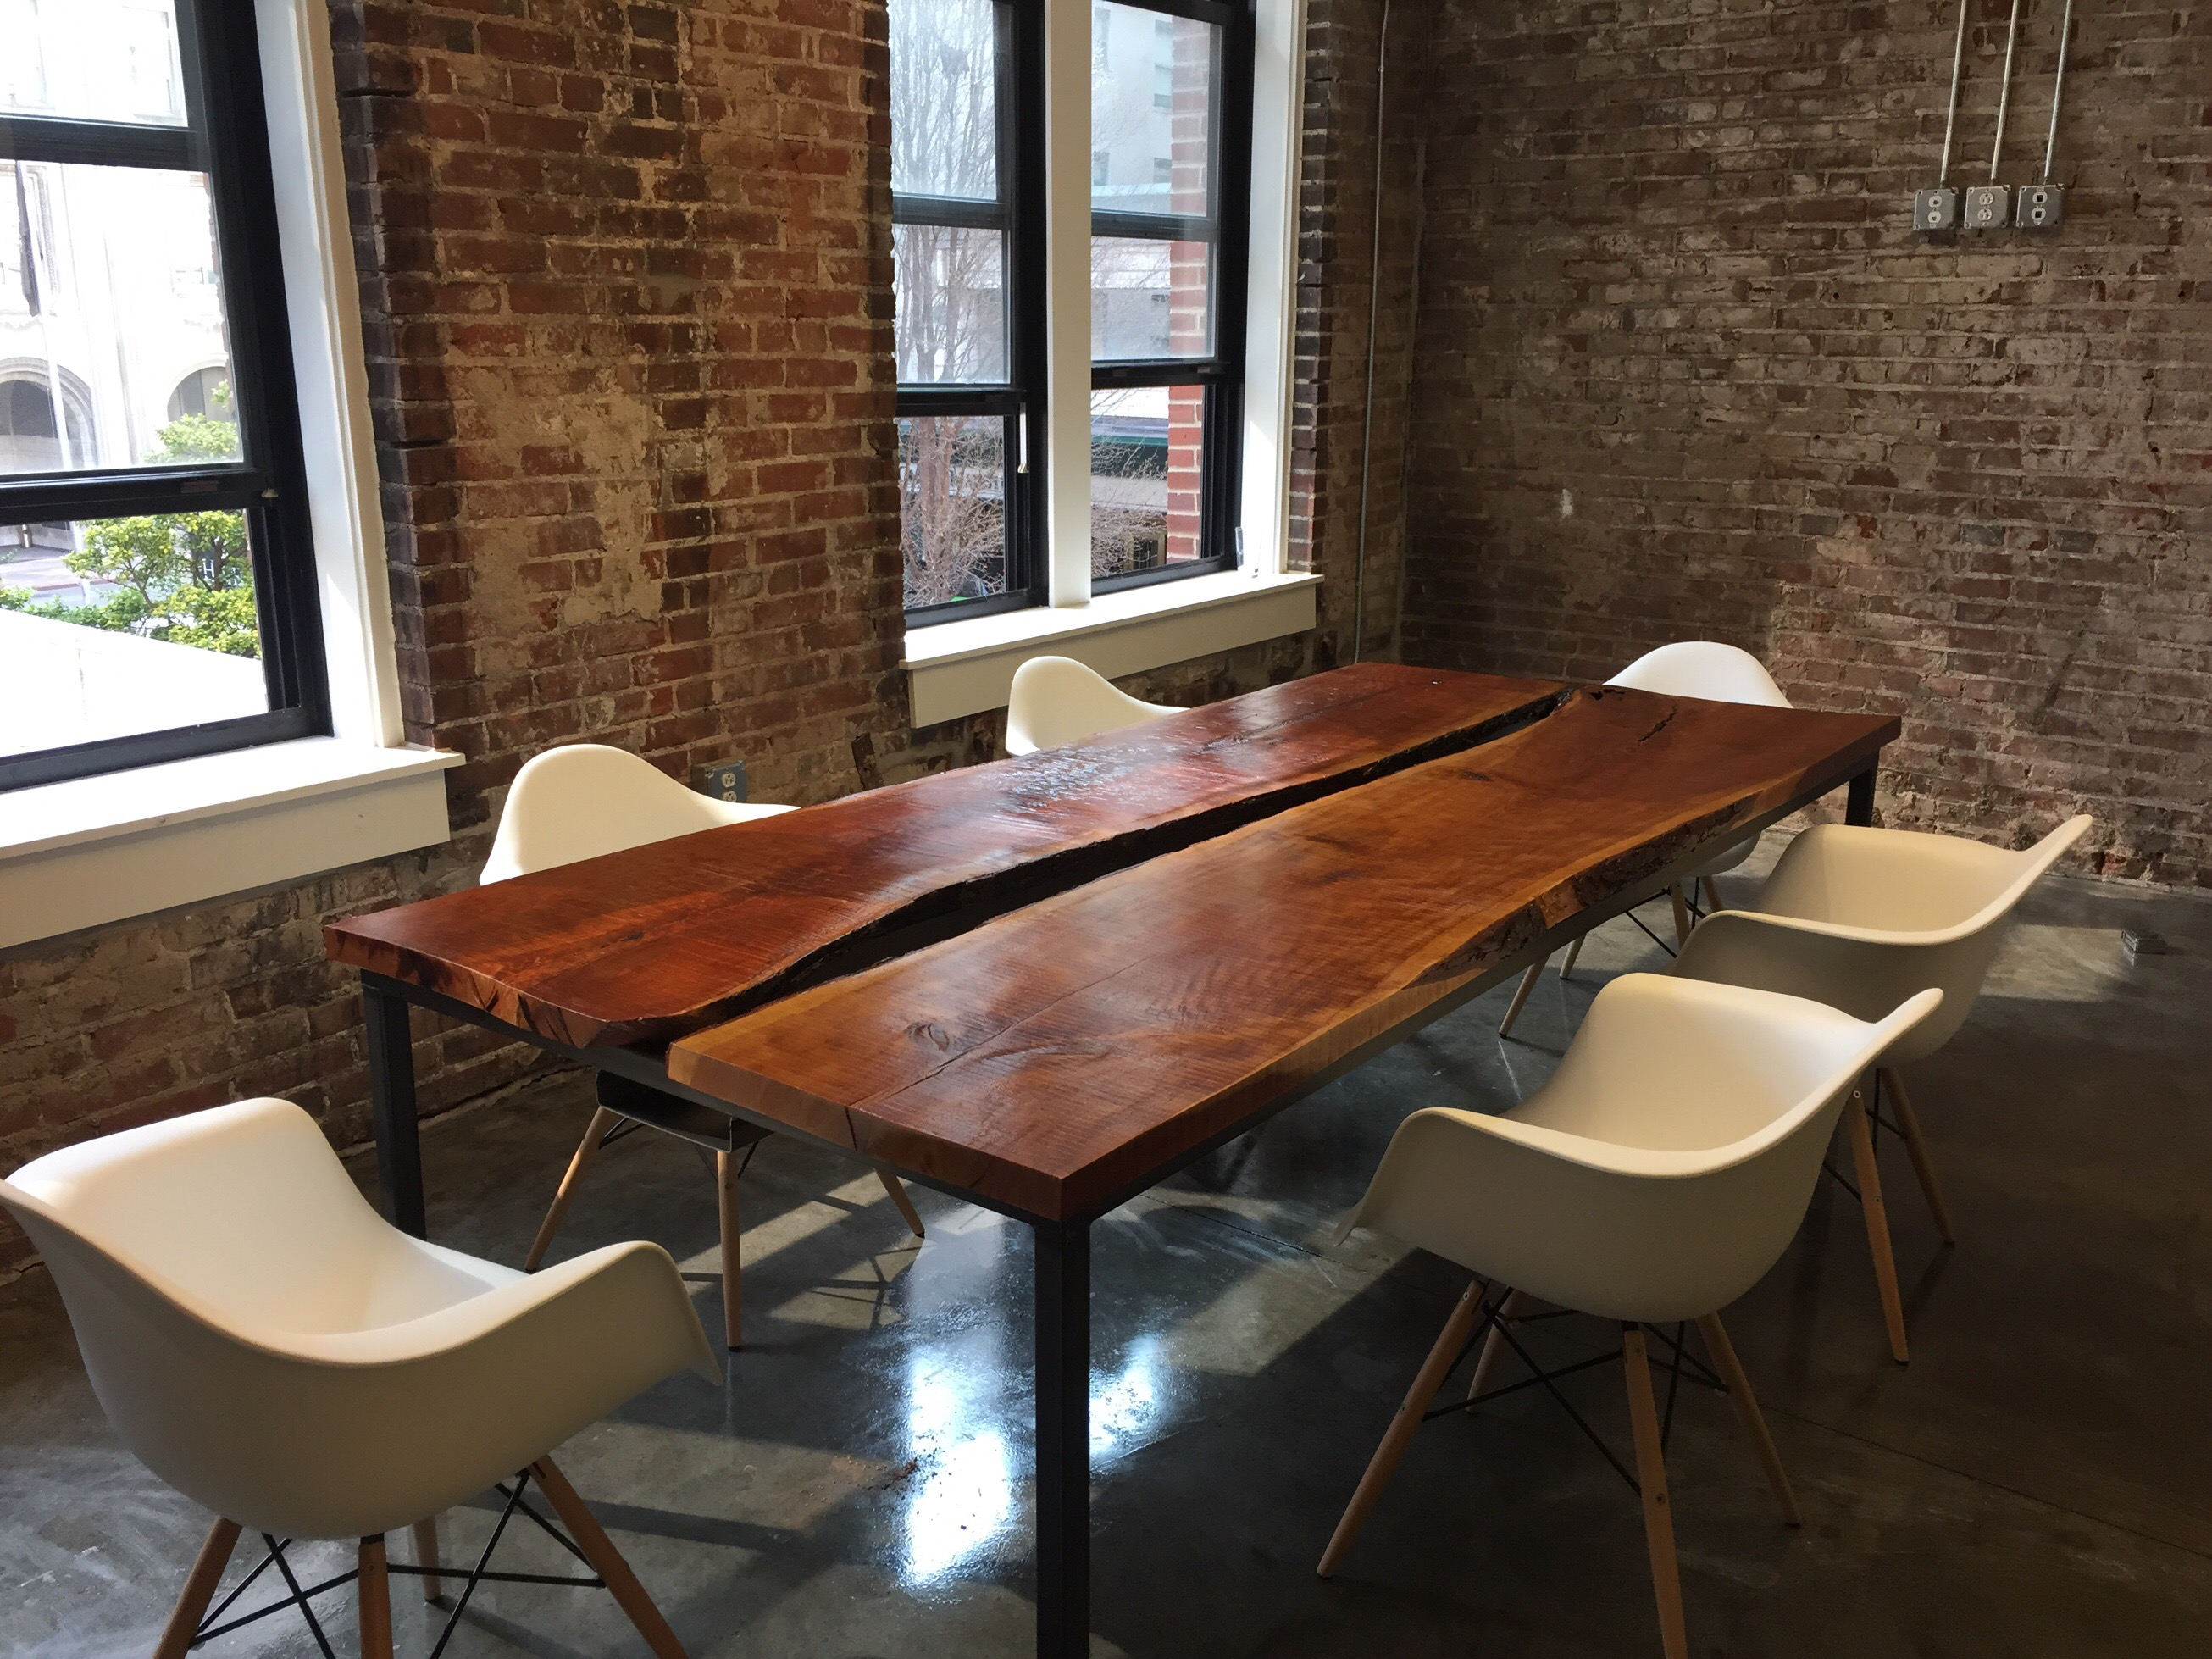 Tremendous Steel Red Oak Slab Conference Table Sd Metalworks Download Free Architecture Designs Crovemadebymaigaardcom